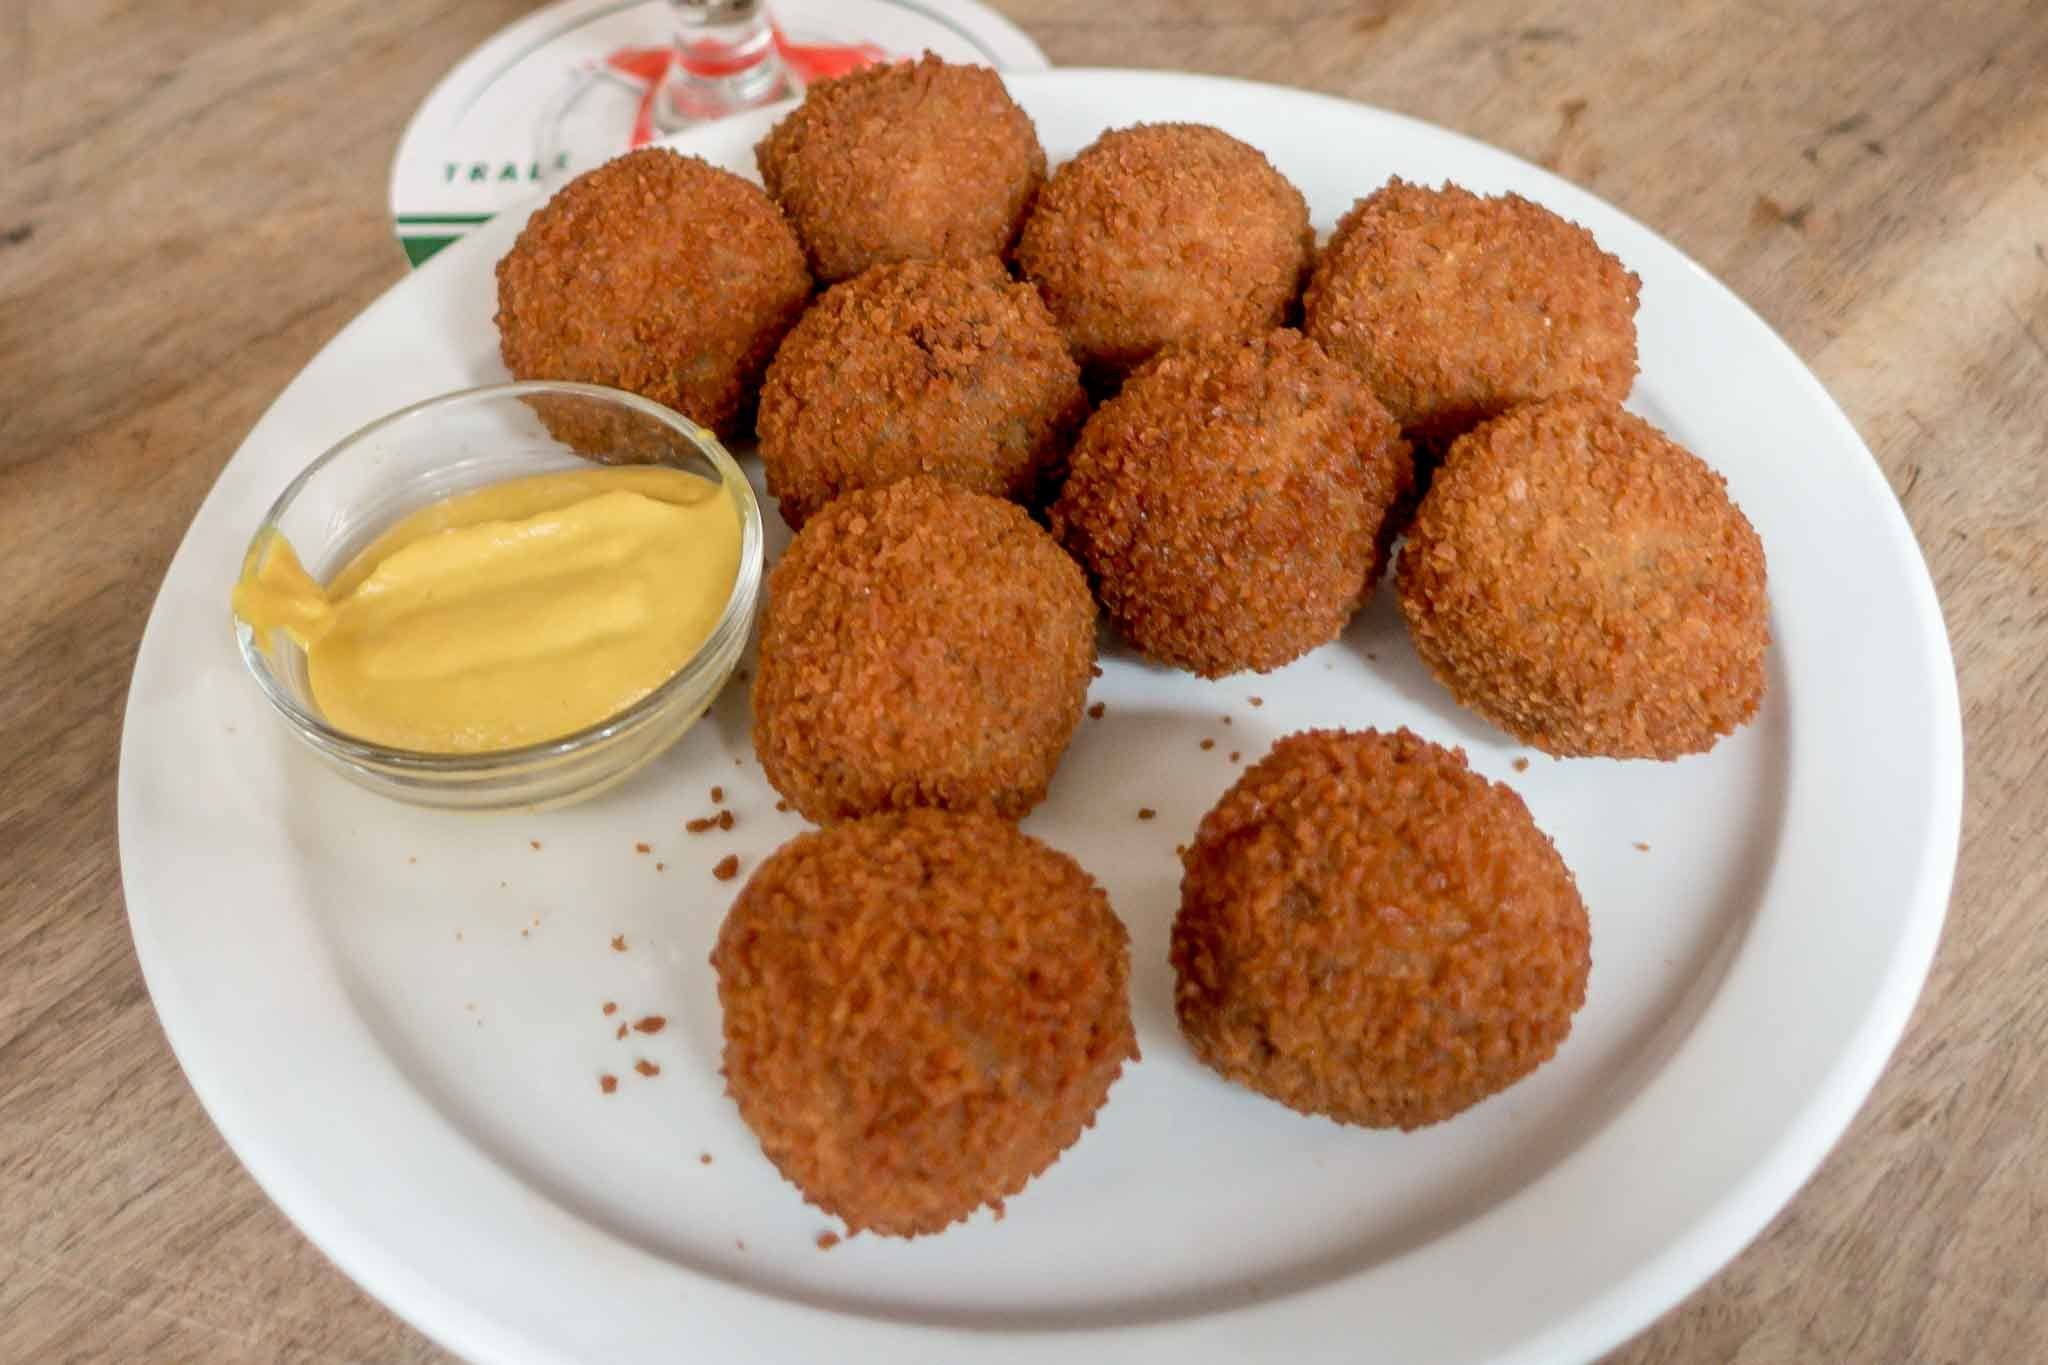 Fried balls of bitterballen with mustard on a plate